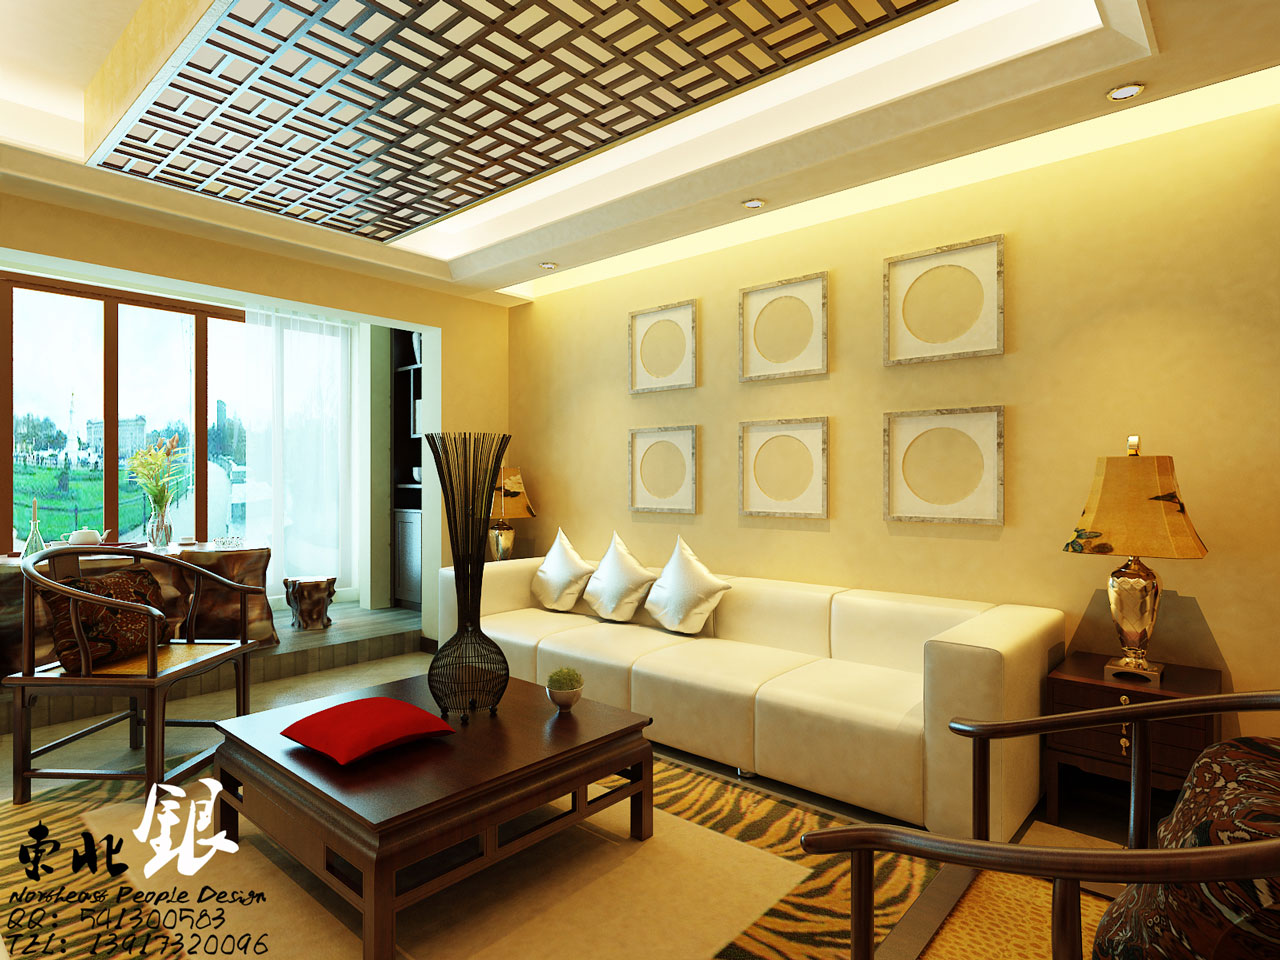 Asian inspired wall art interior design ideas for Asian interior decoration